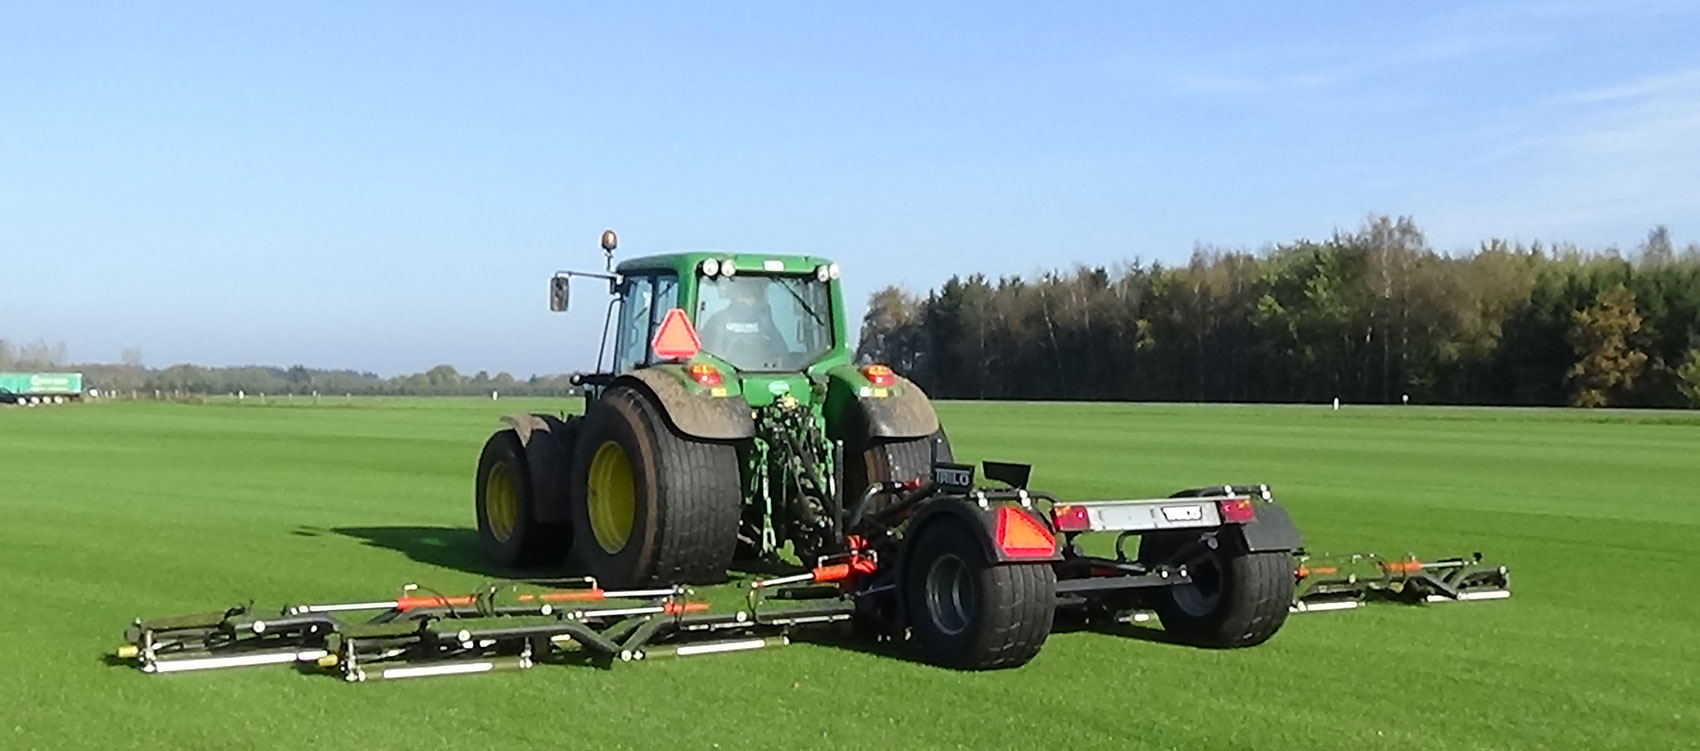 Grass Group Blog » The new Trilo R10